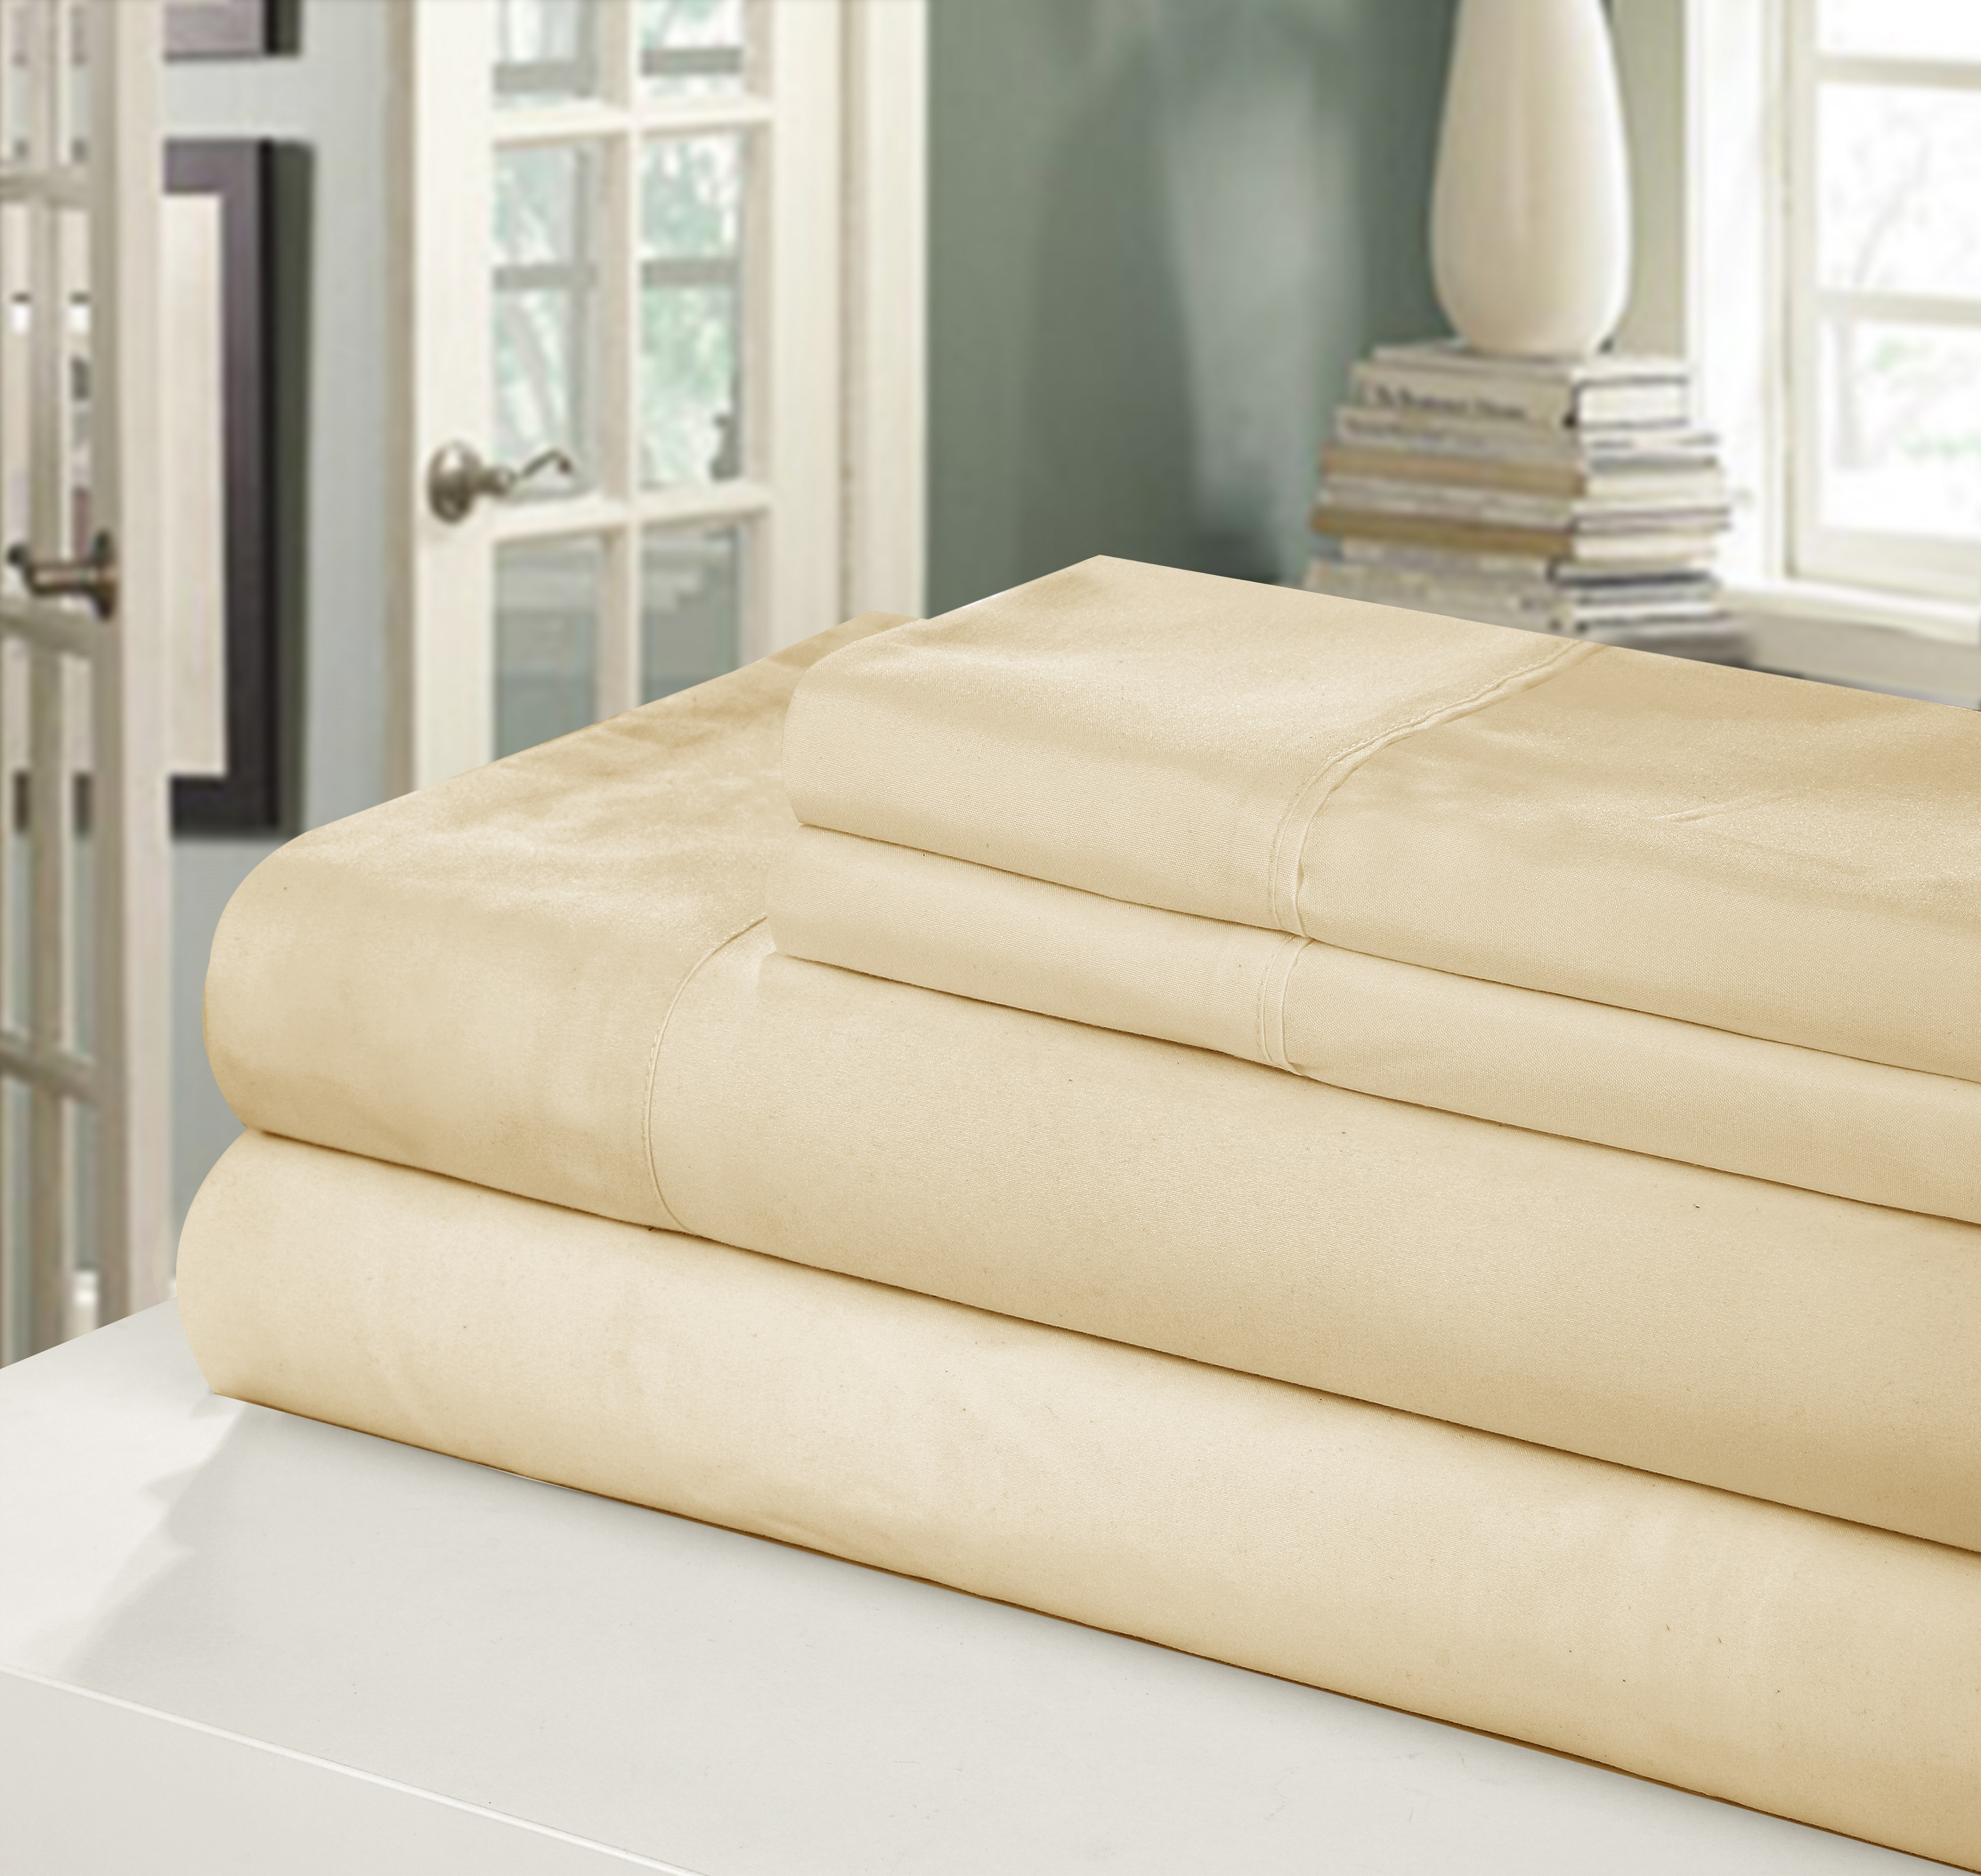 Chic Home NEW!! Chic Home 400 Series Peach Skin Microfiber 4-Piece Sheet Set Ensemble, Queen, Sand